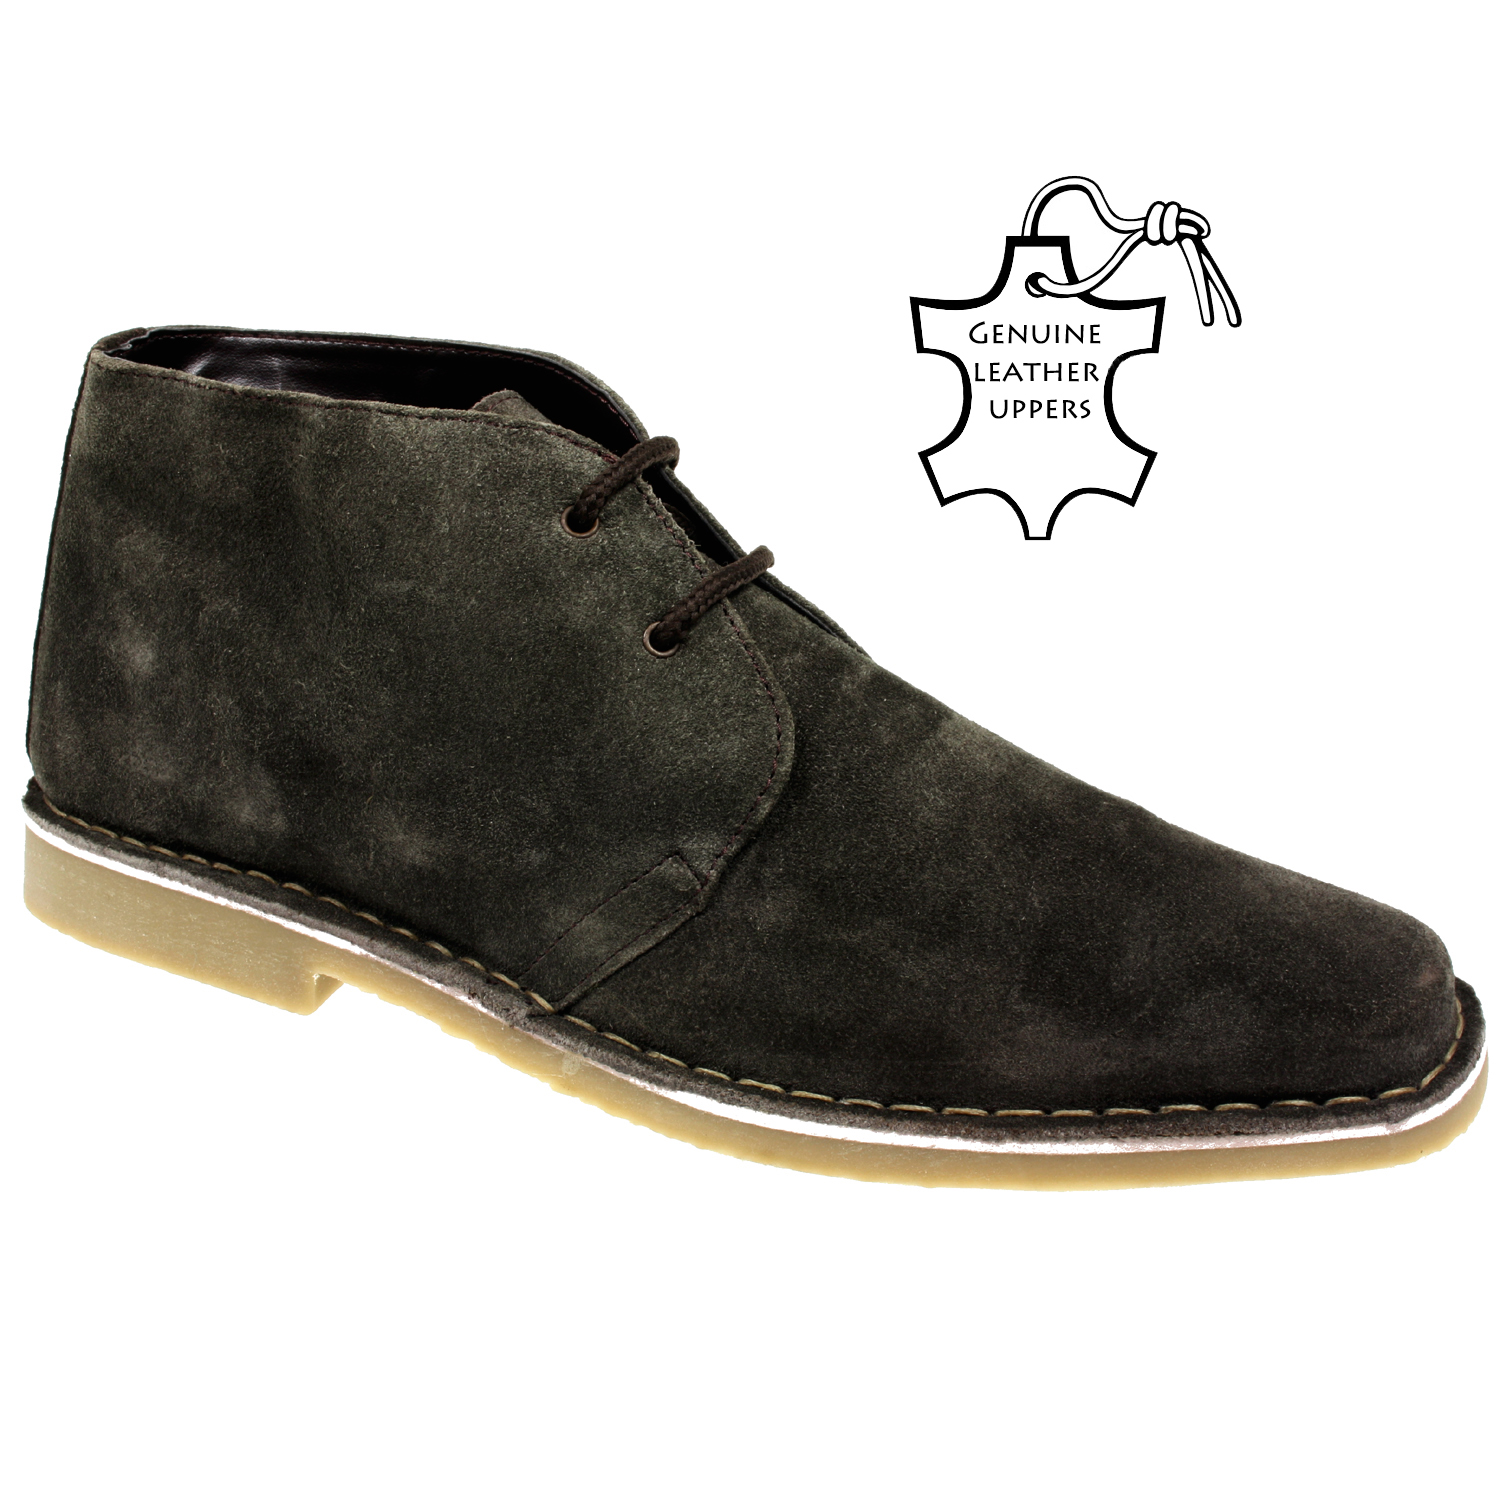 mens leather desert boots gents suede fashion ankle casual